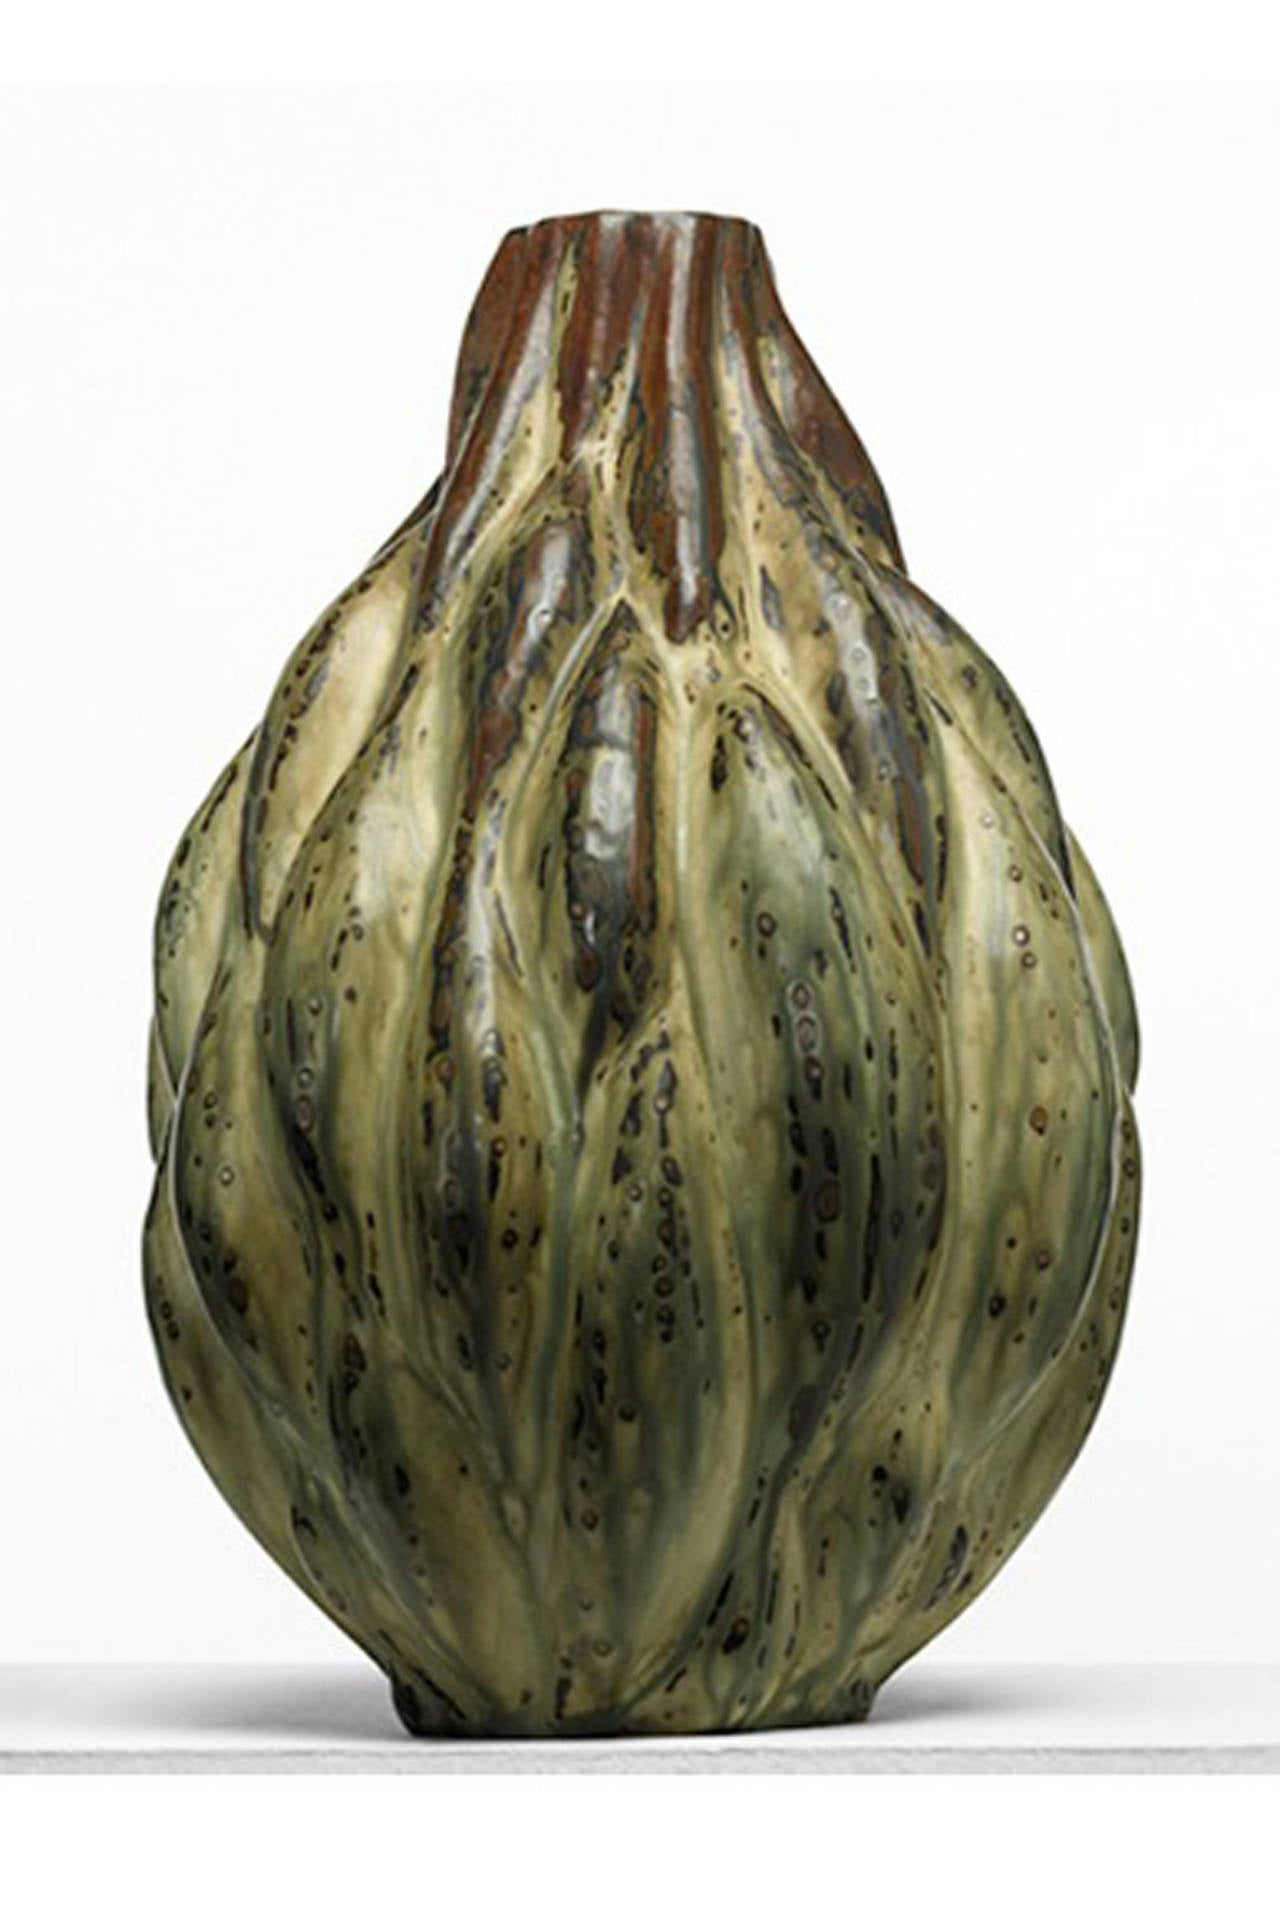 Stoneware, large artichoke from with a sung glaze in brown and cream with bluish overtones. Signed Salto (1889-1961) on the underside with Royal Copenhagen blue wave marks.